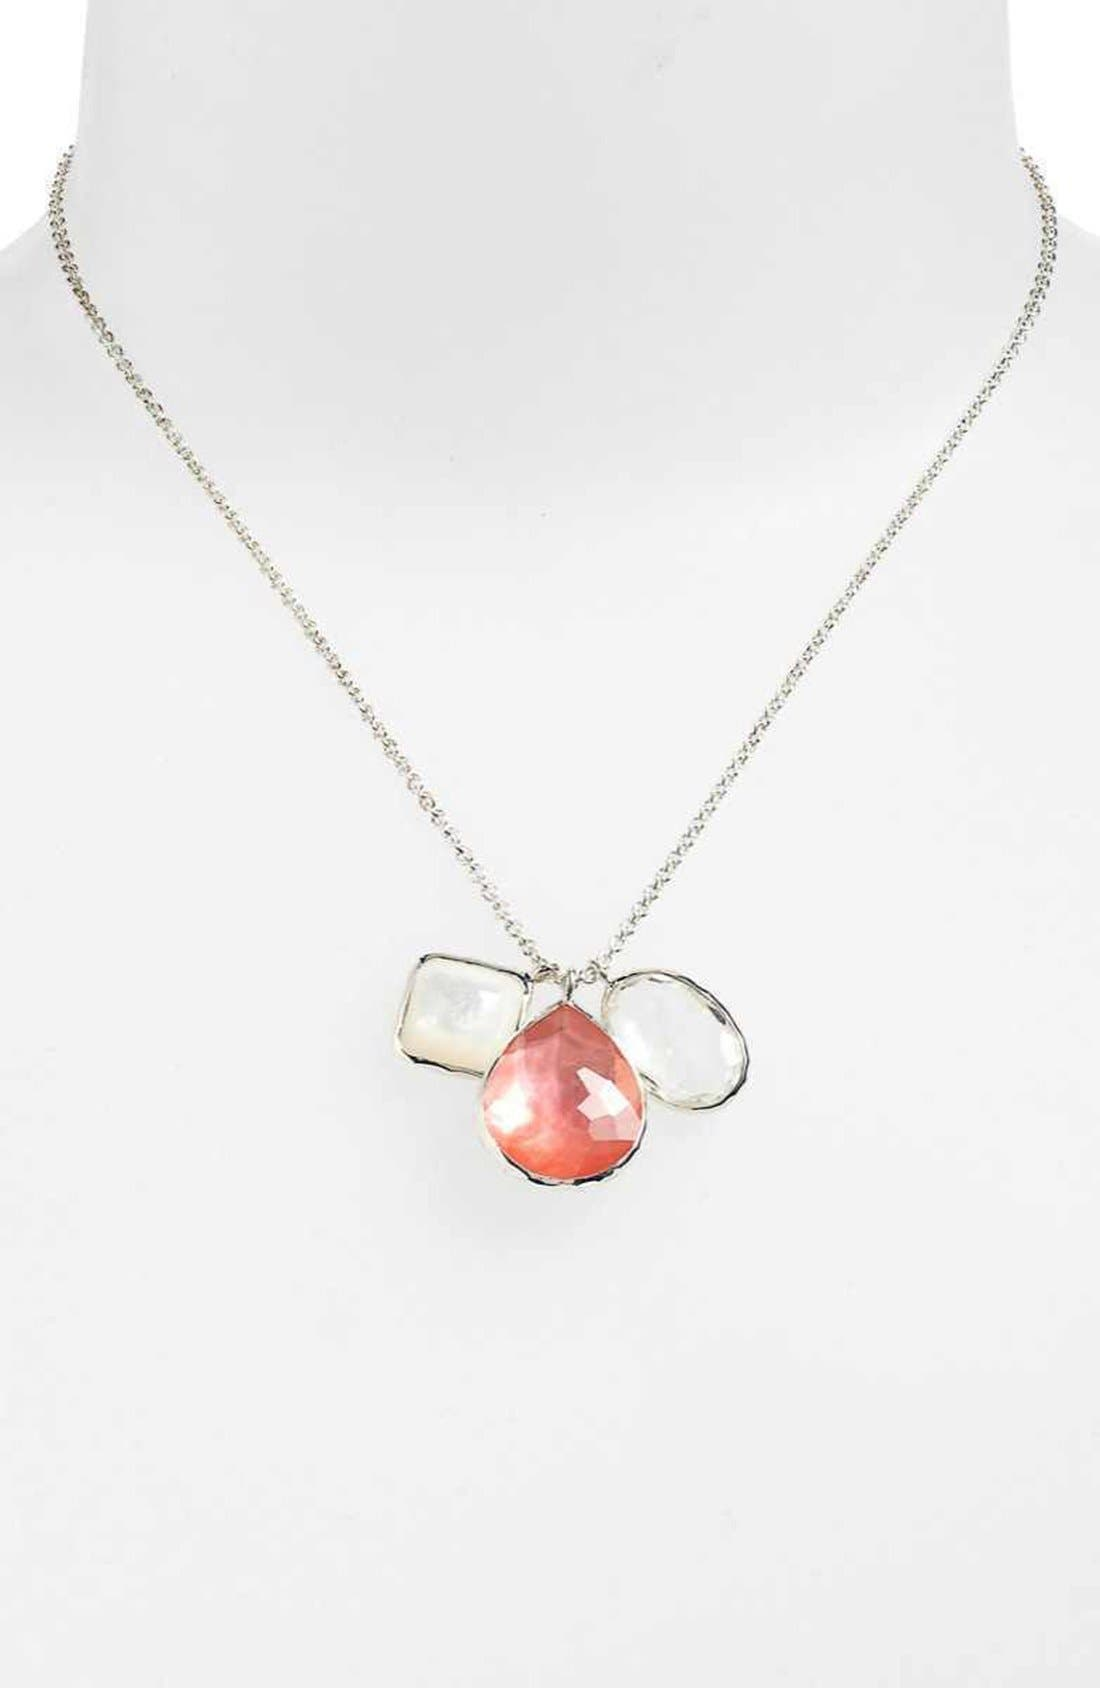 Image of Ippolita Sterling Silver Wonderland 3-Stone Charm Necklace in Pizzelle